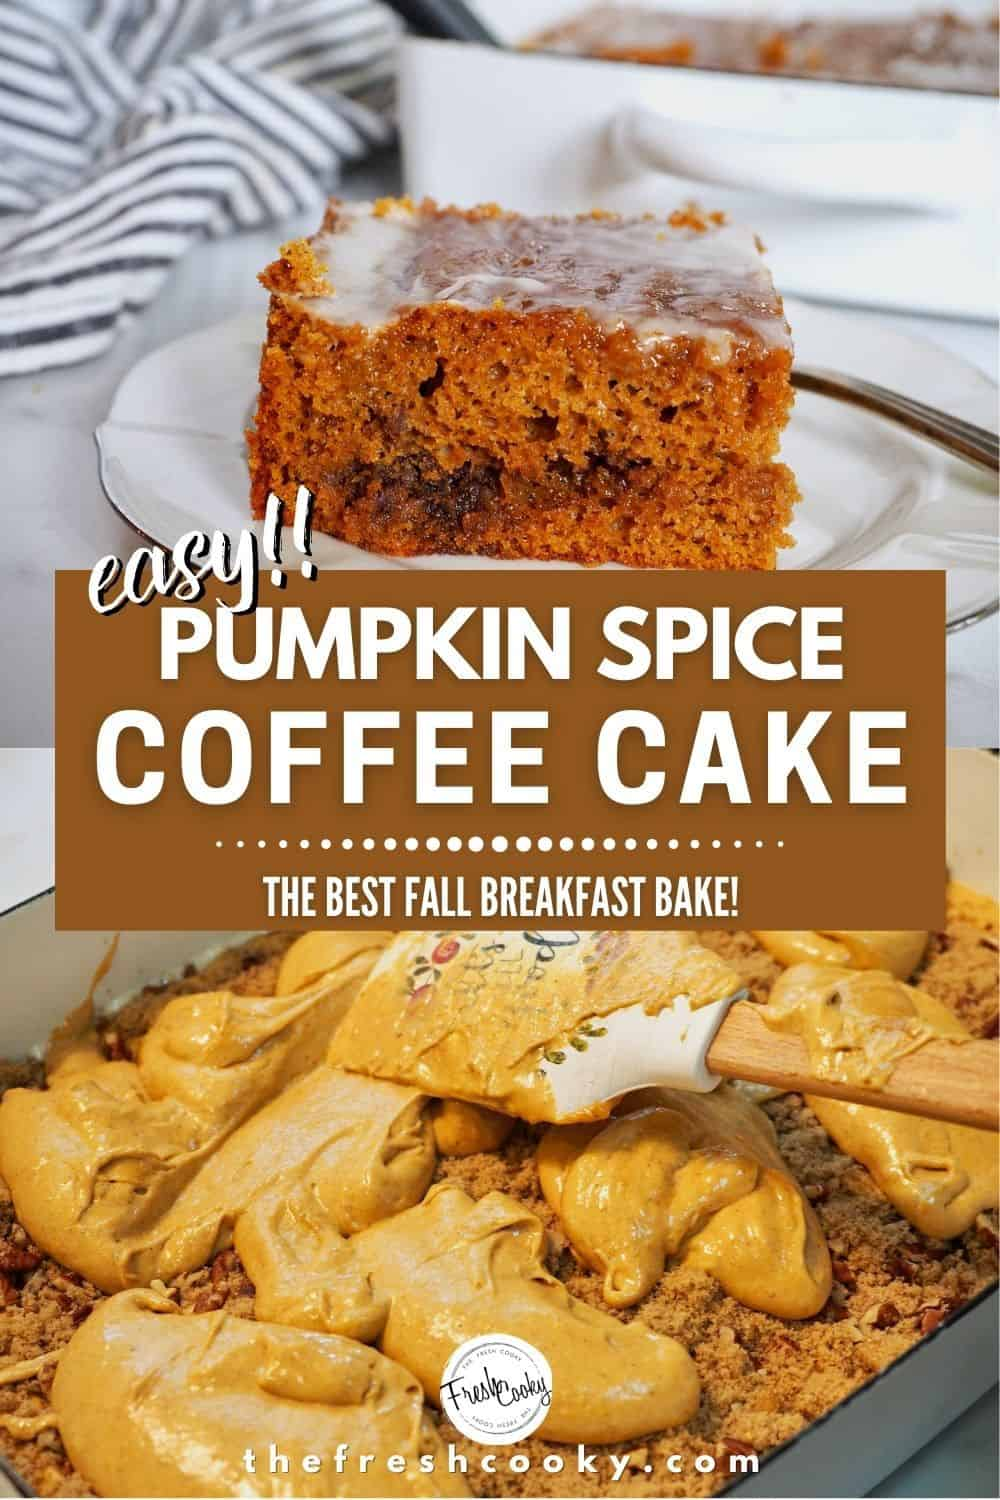 Fall temps bring the desire to bake, like this crazy good, easy Pumpkin Spice Coffee Cake. Using a doctored up cake mix, this pumpkin cake from The Fresh Cooky is perfect for any fall or Thanksgiving morning. High altitude adjustments included in recipe. This pumpkin honey bun cake is the best! #thefreshcooky #pumpkincake #spicecake via @thefreshcooky